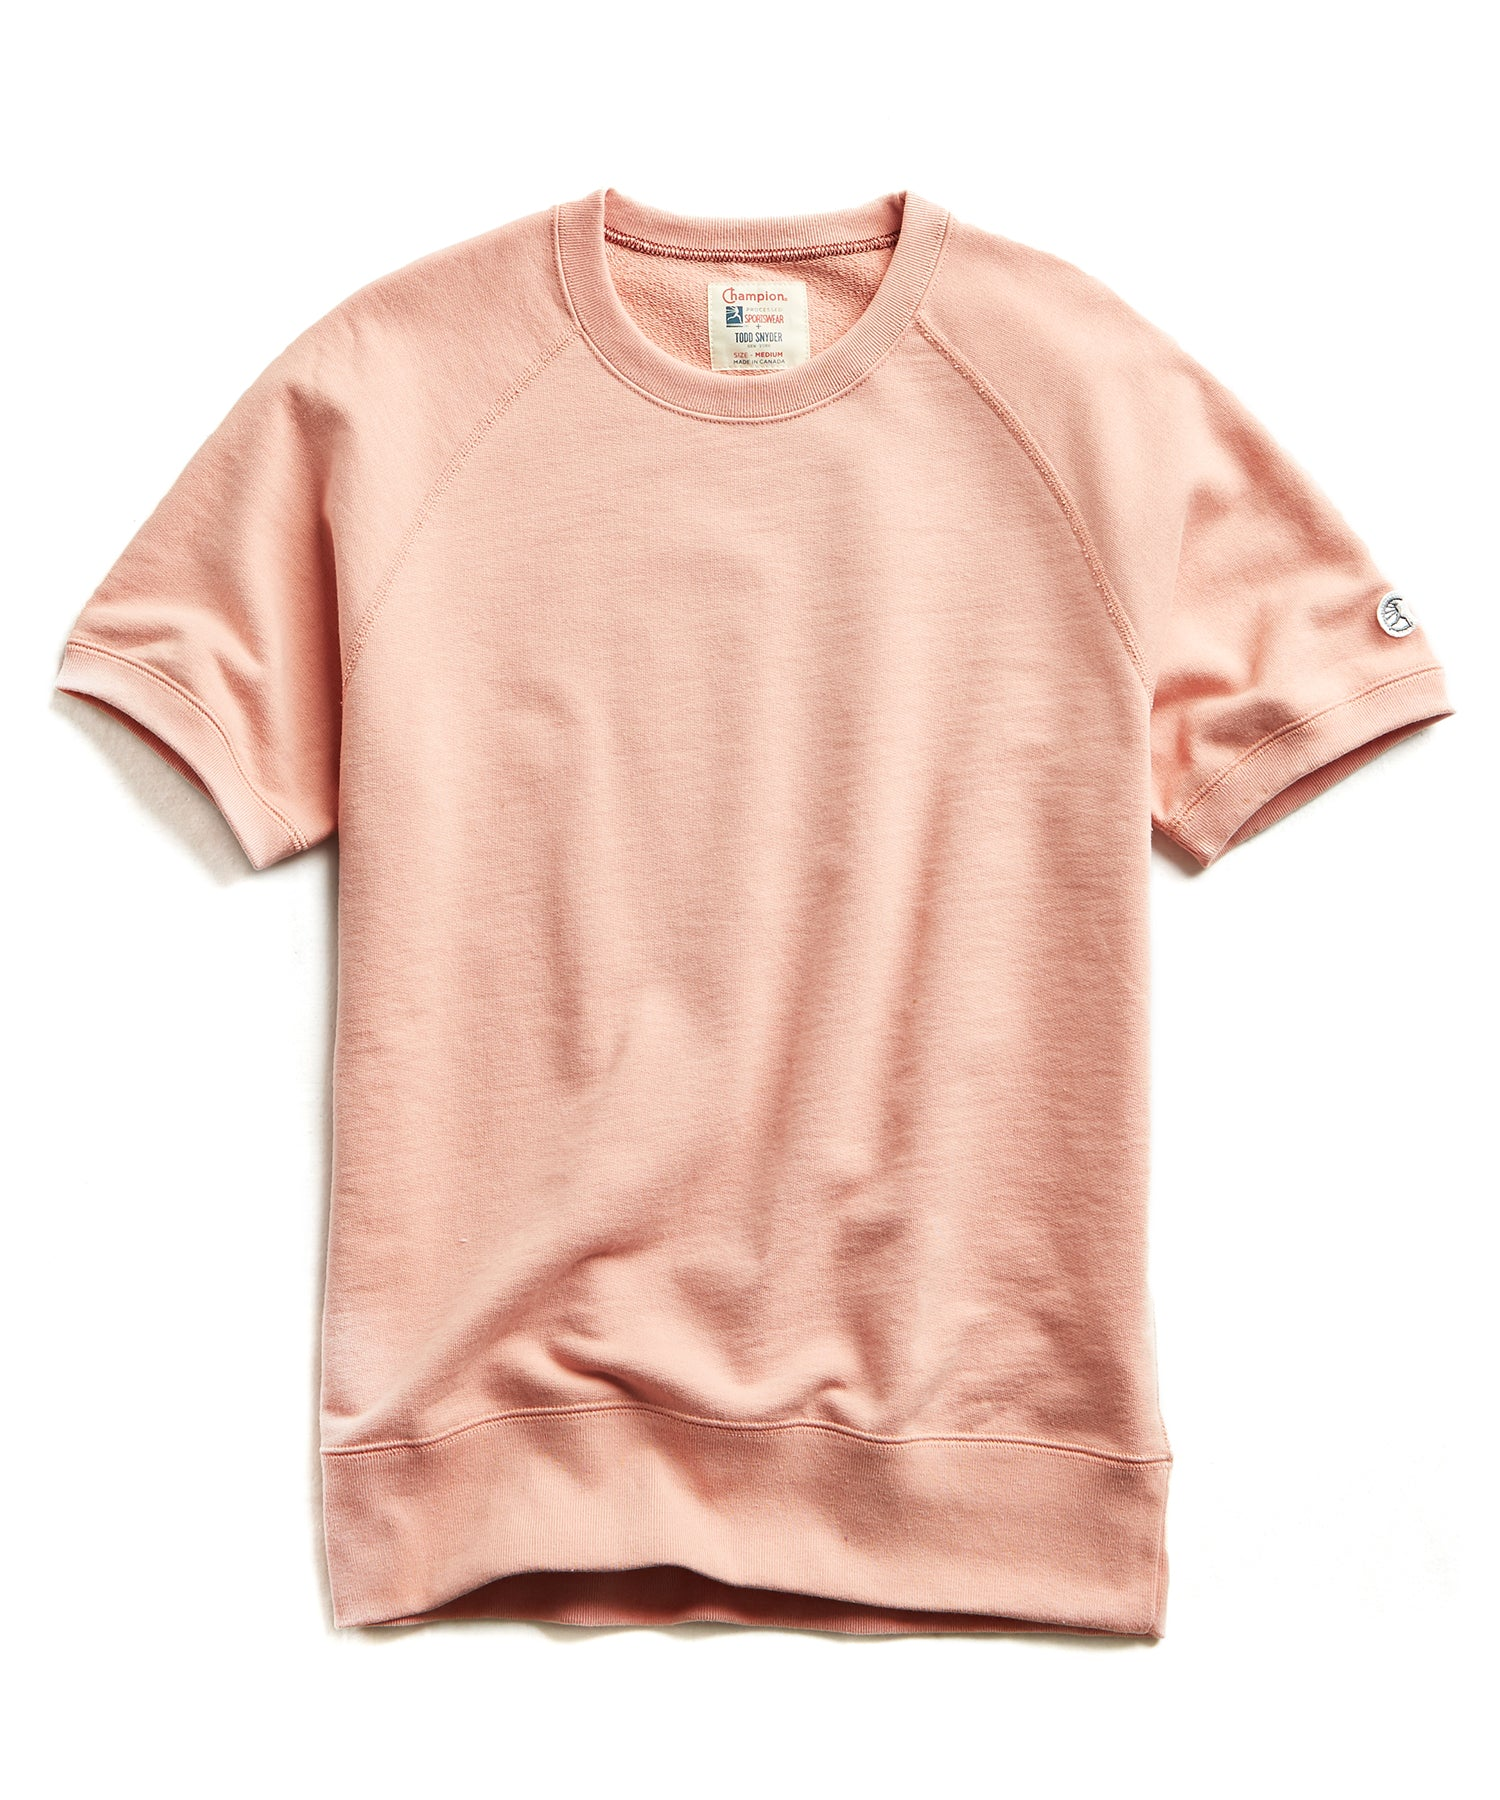 Terry Short Sleeve Sweatshirt in Pale Salmon